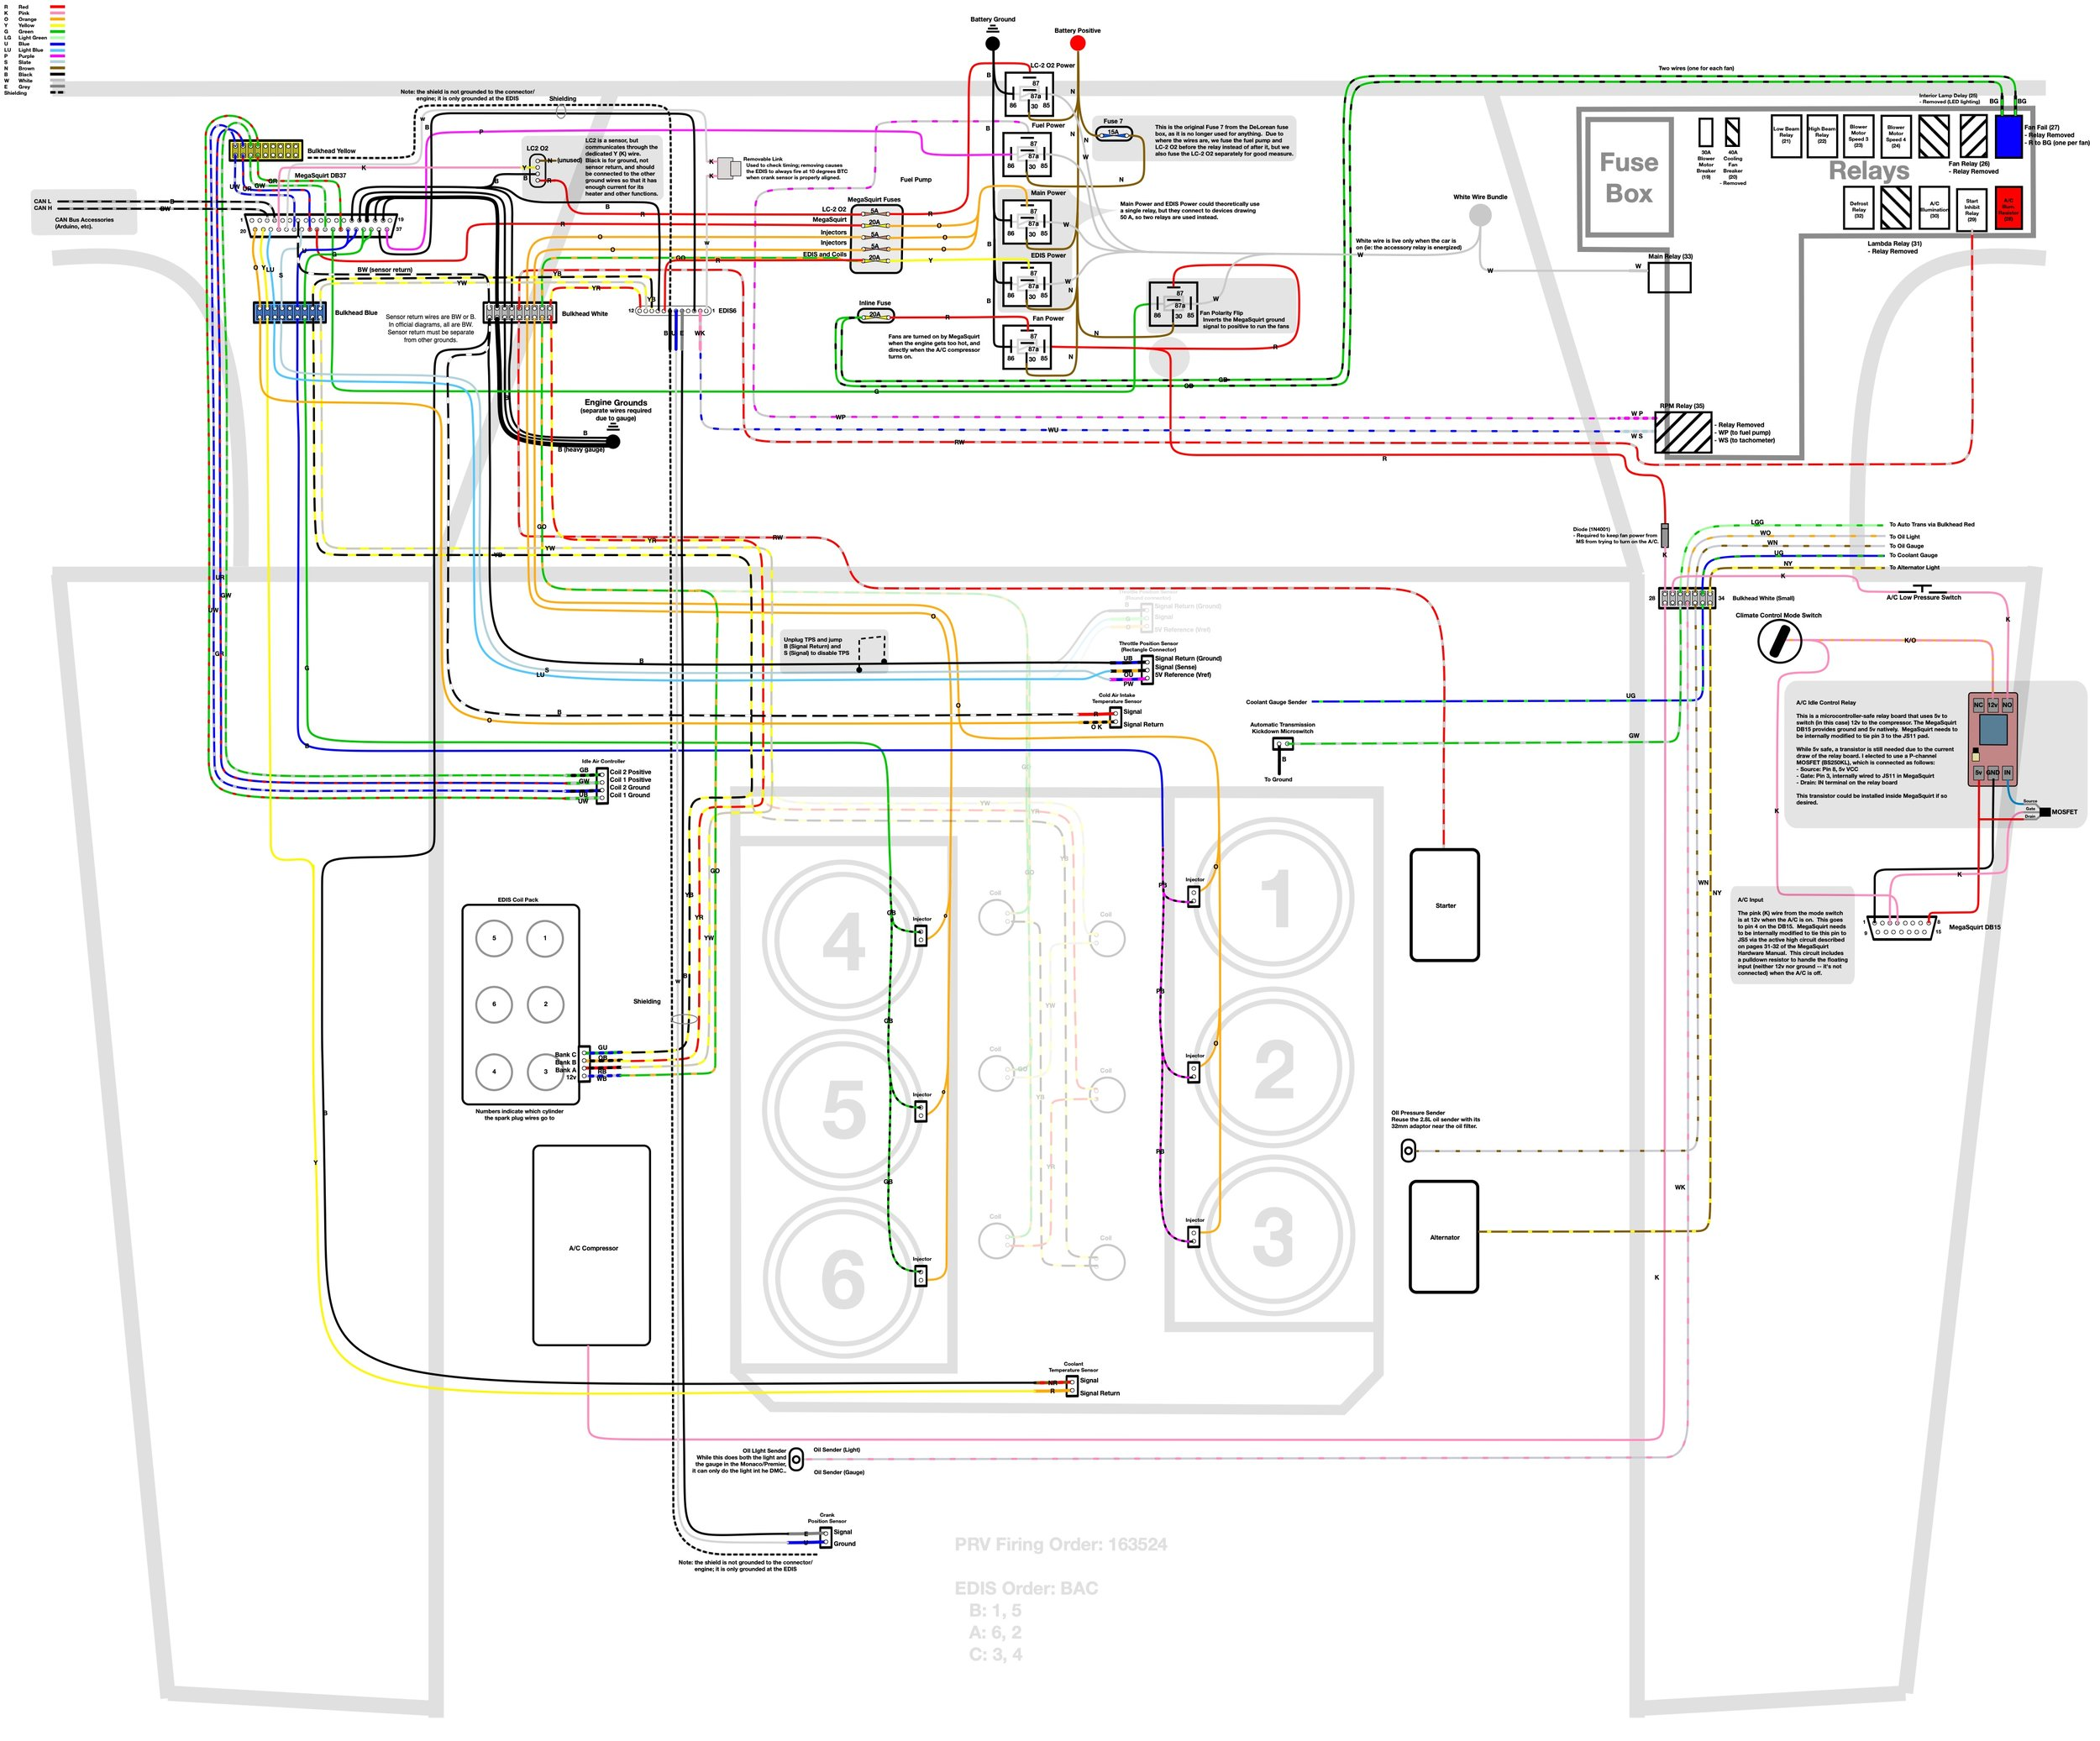 DeLorean+EFI+Wiring?format=1500w wiring, installing the new harness and fuel injector refurbishing fuel injector wiring diagram at bakdesigns.co